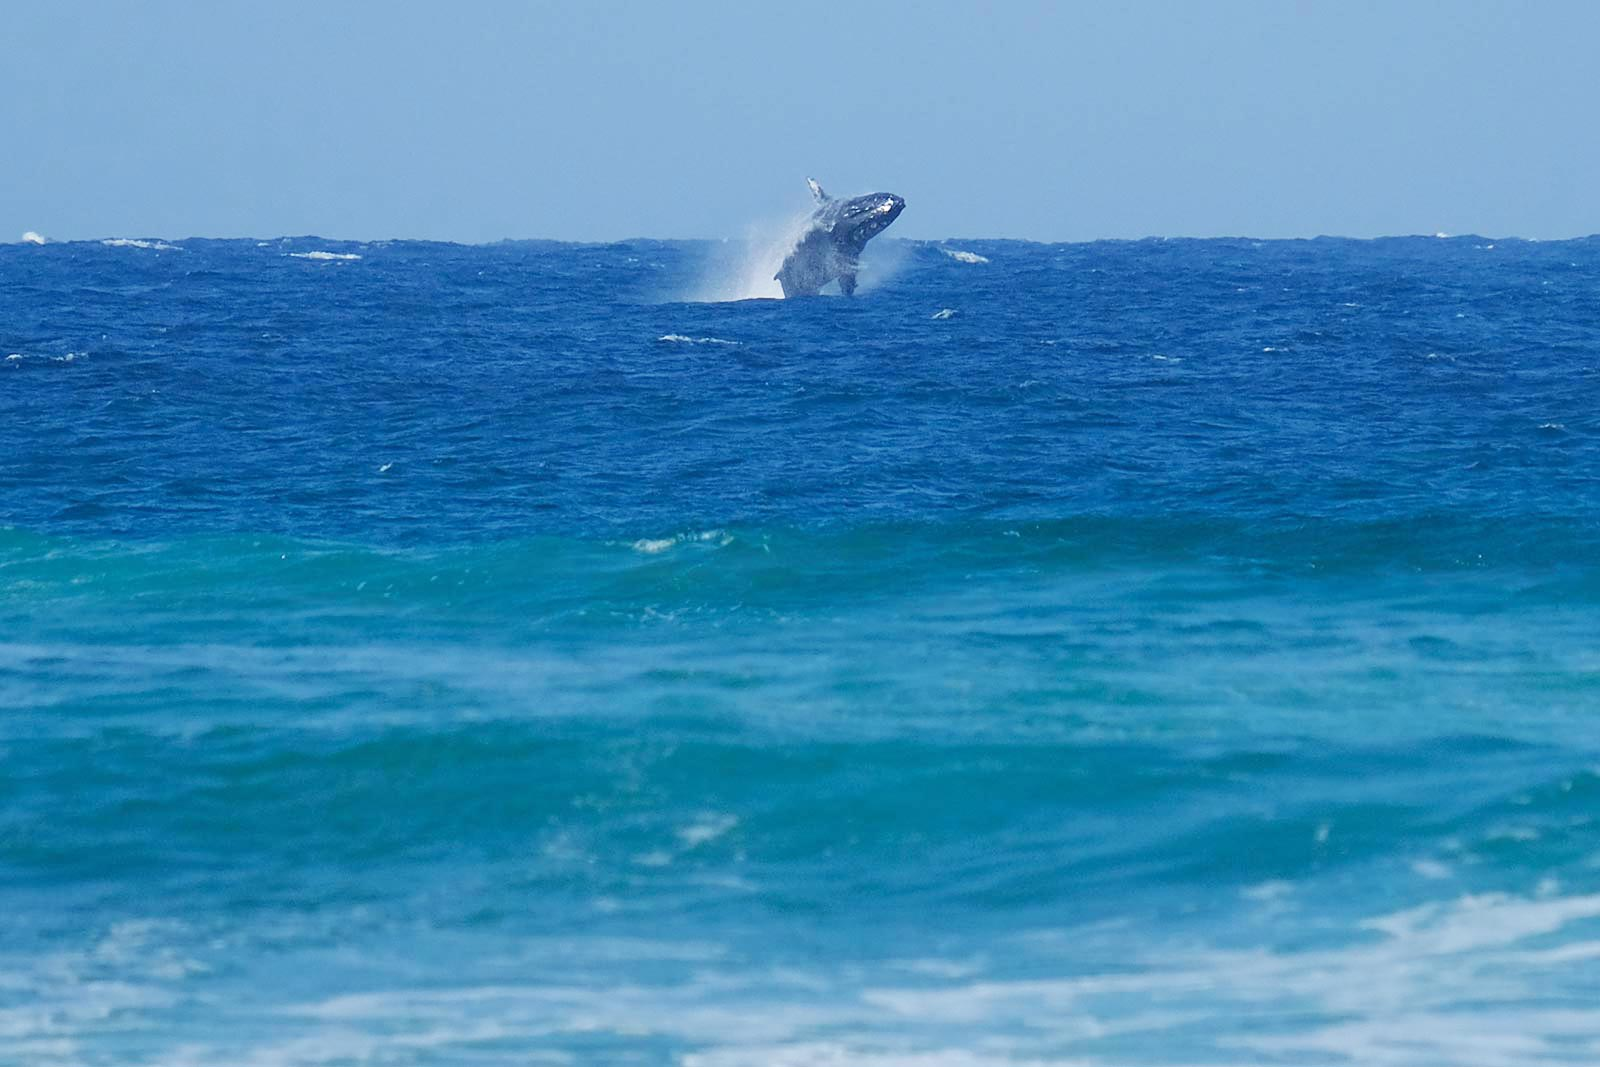 A whale is jumping out of the water